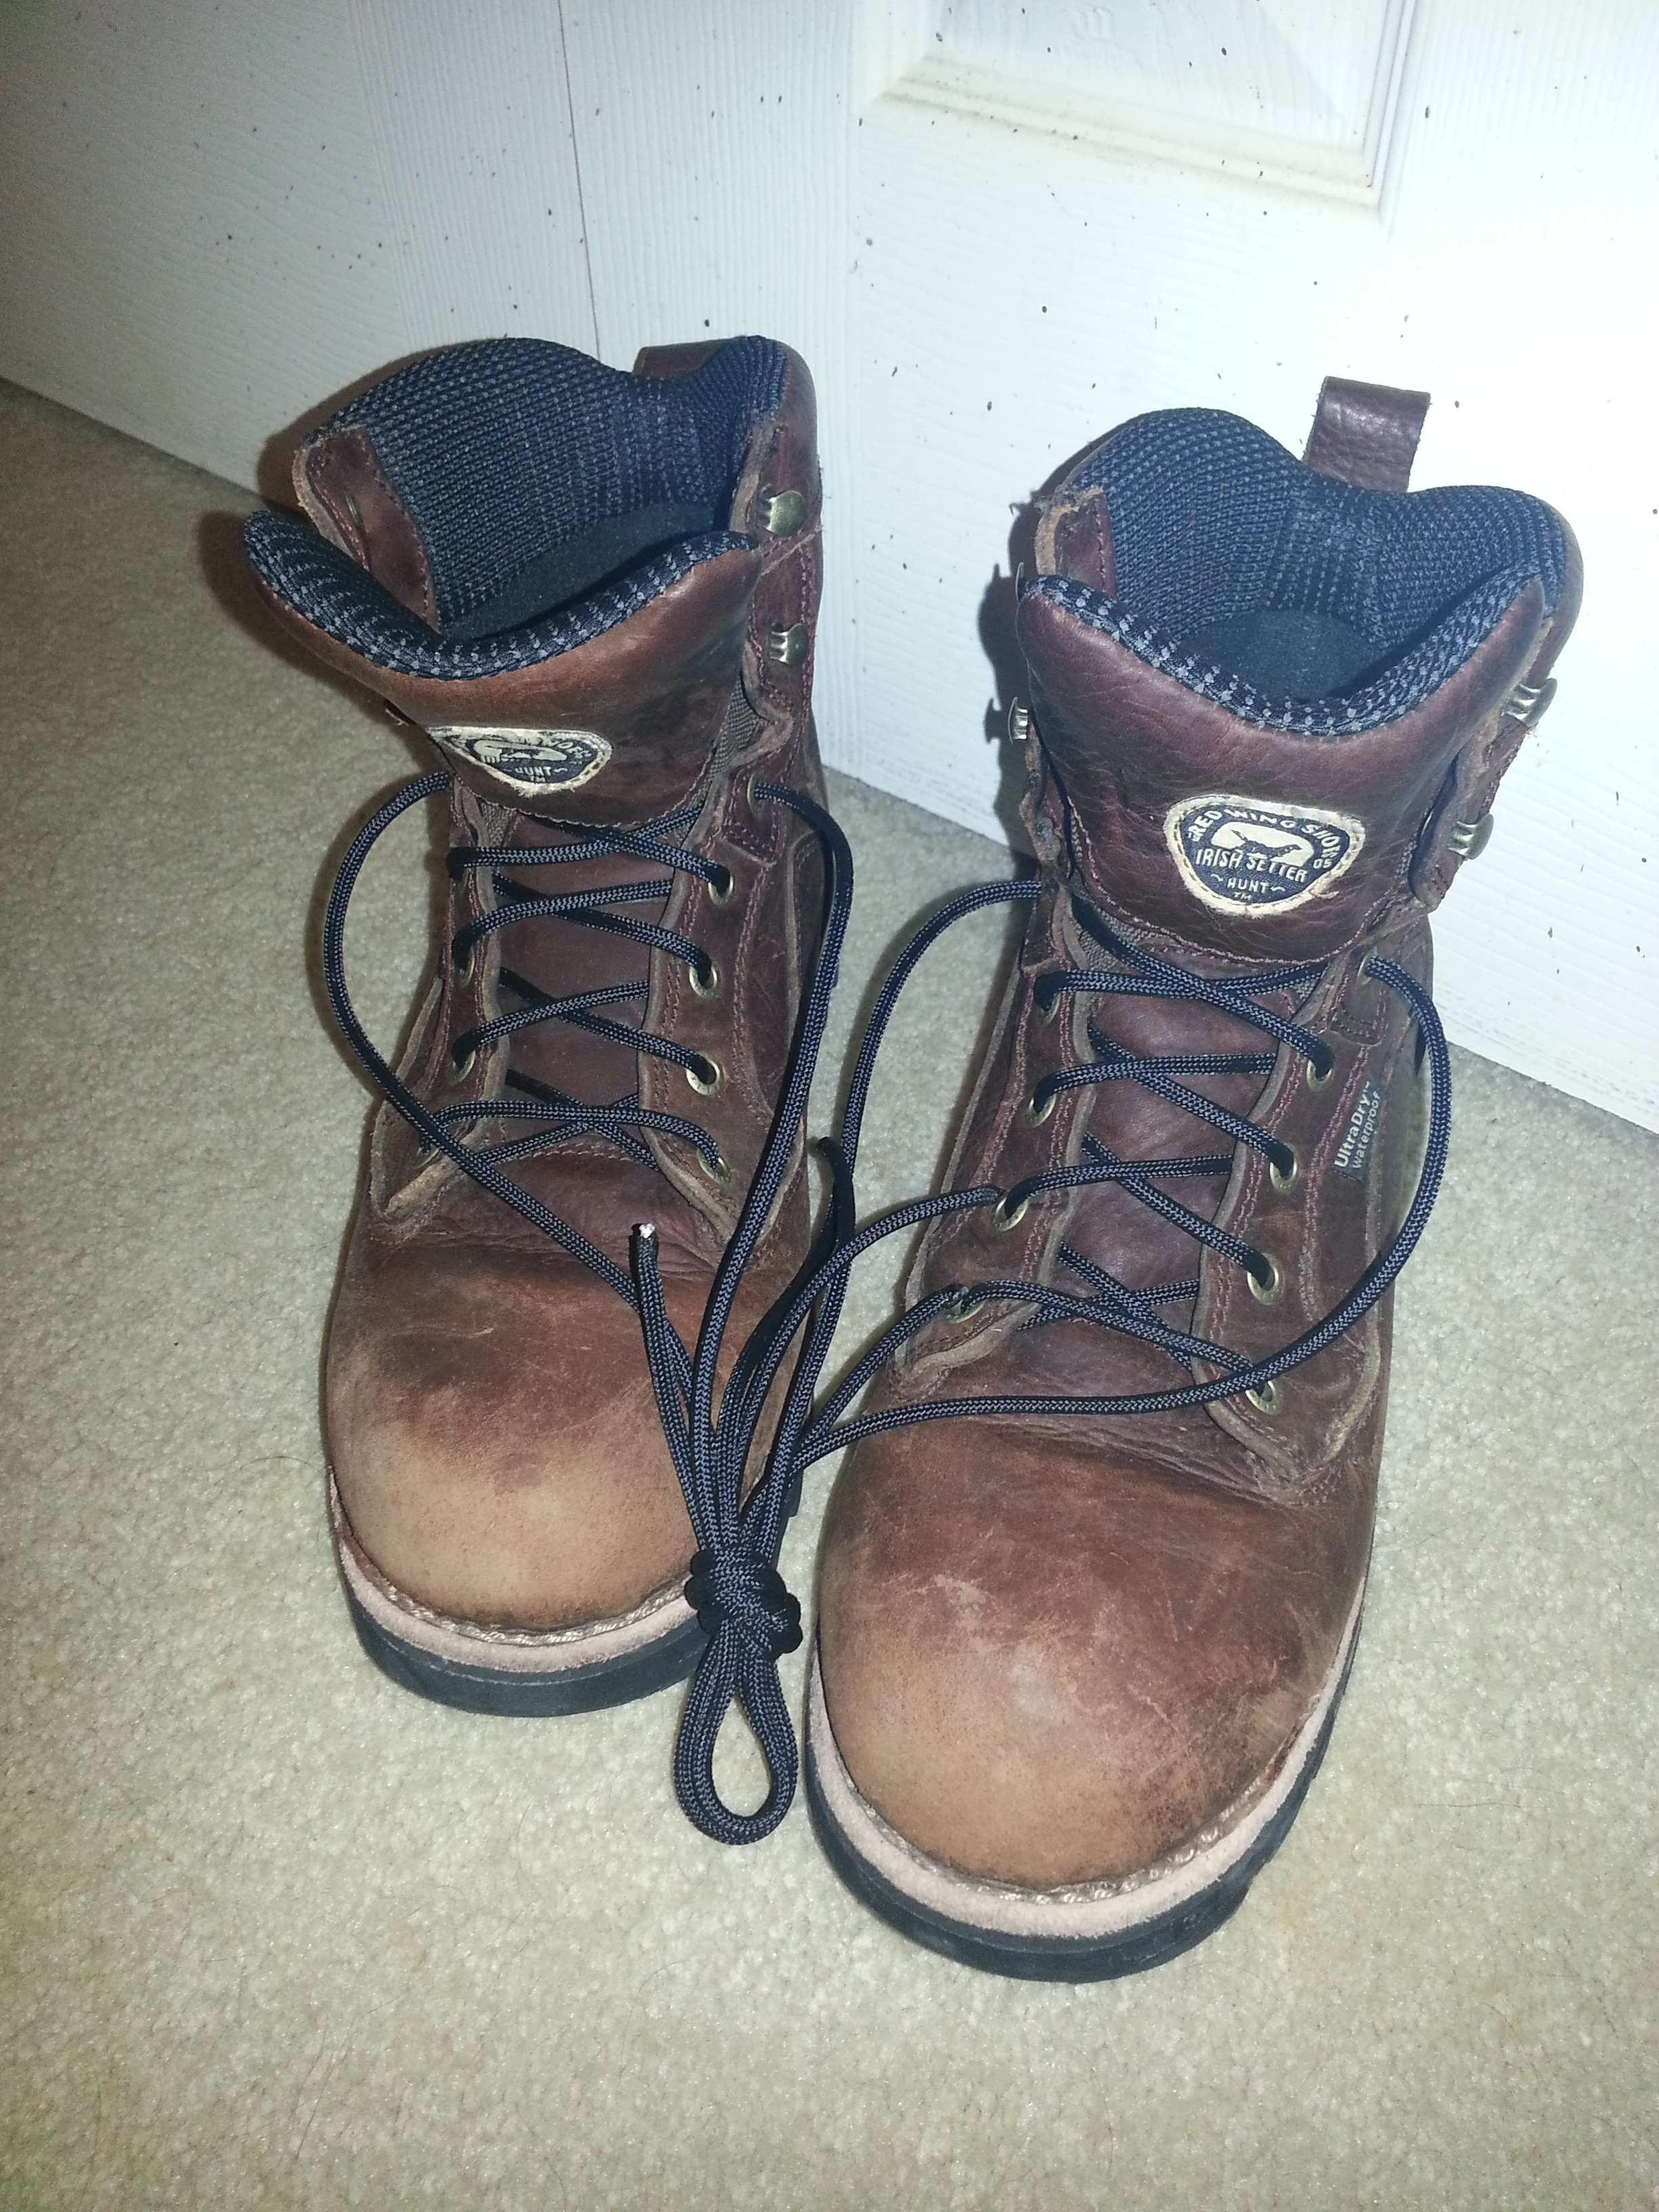 Hiking boots with black paracord laces